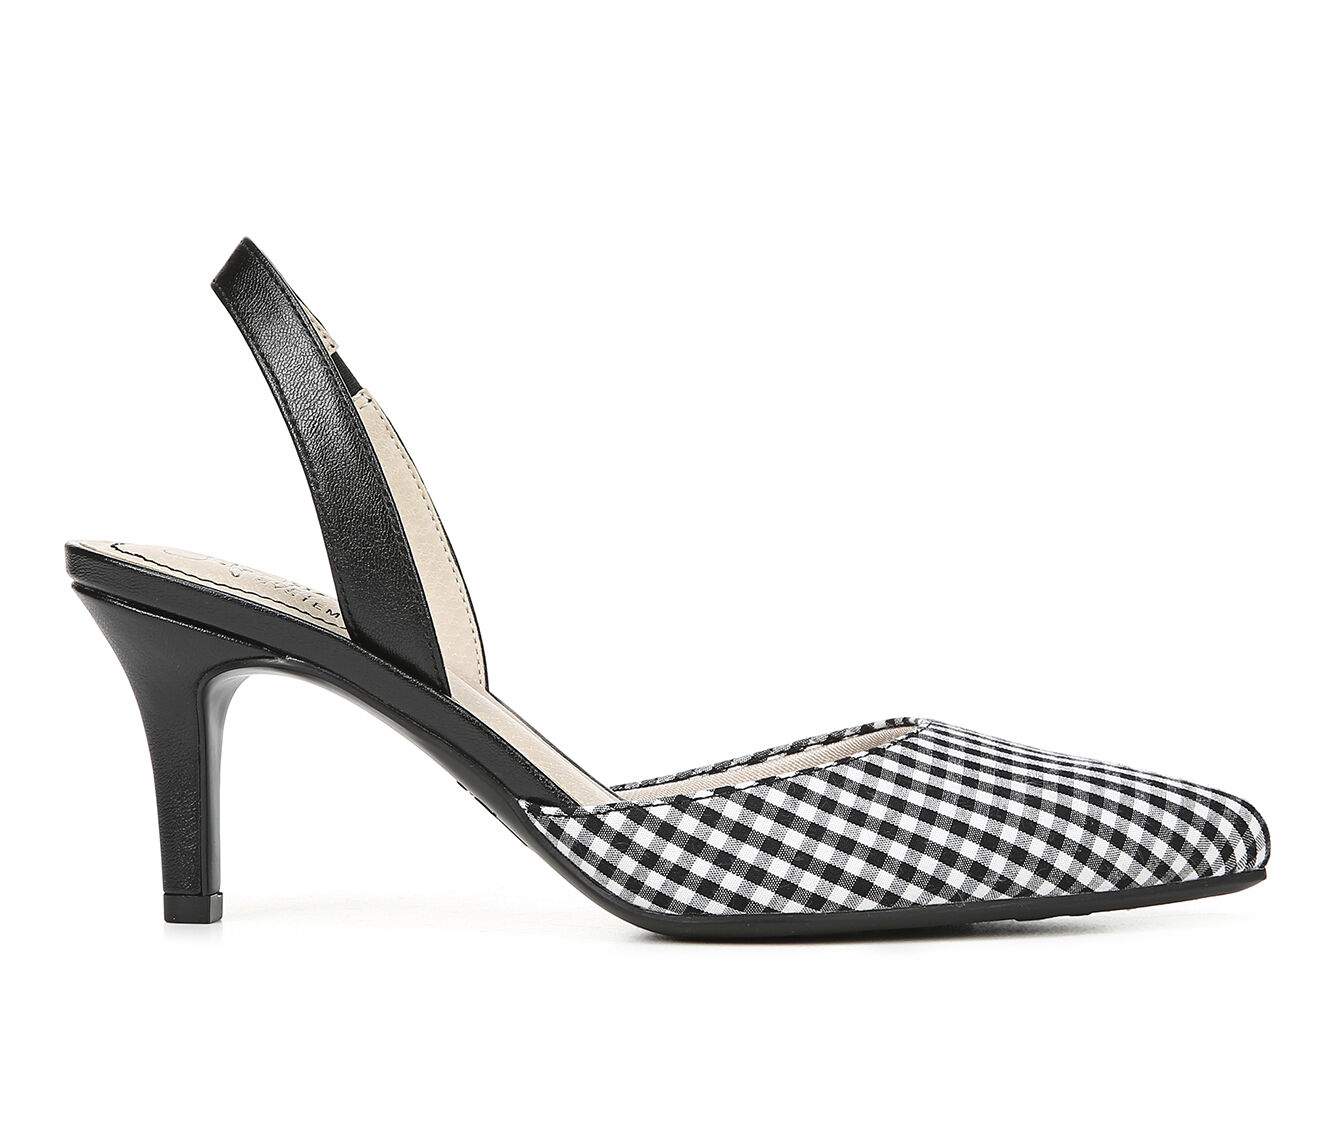 The Lowest Price Women's LifeStride Shane Pumps Blk/Wht Gingham